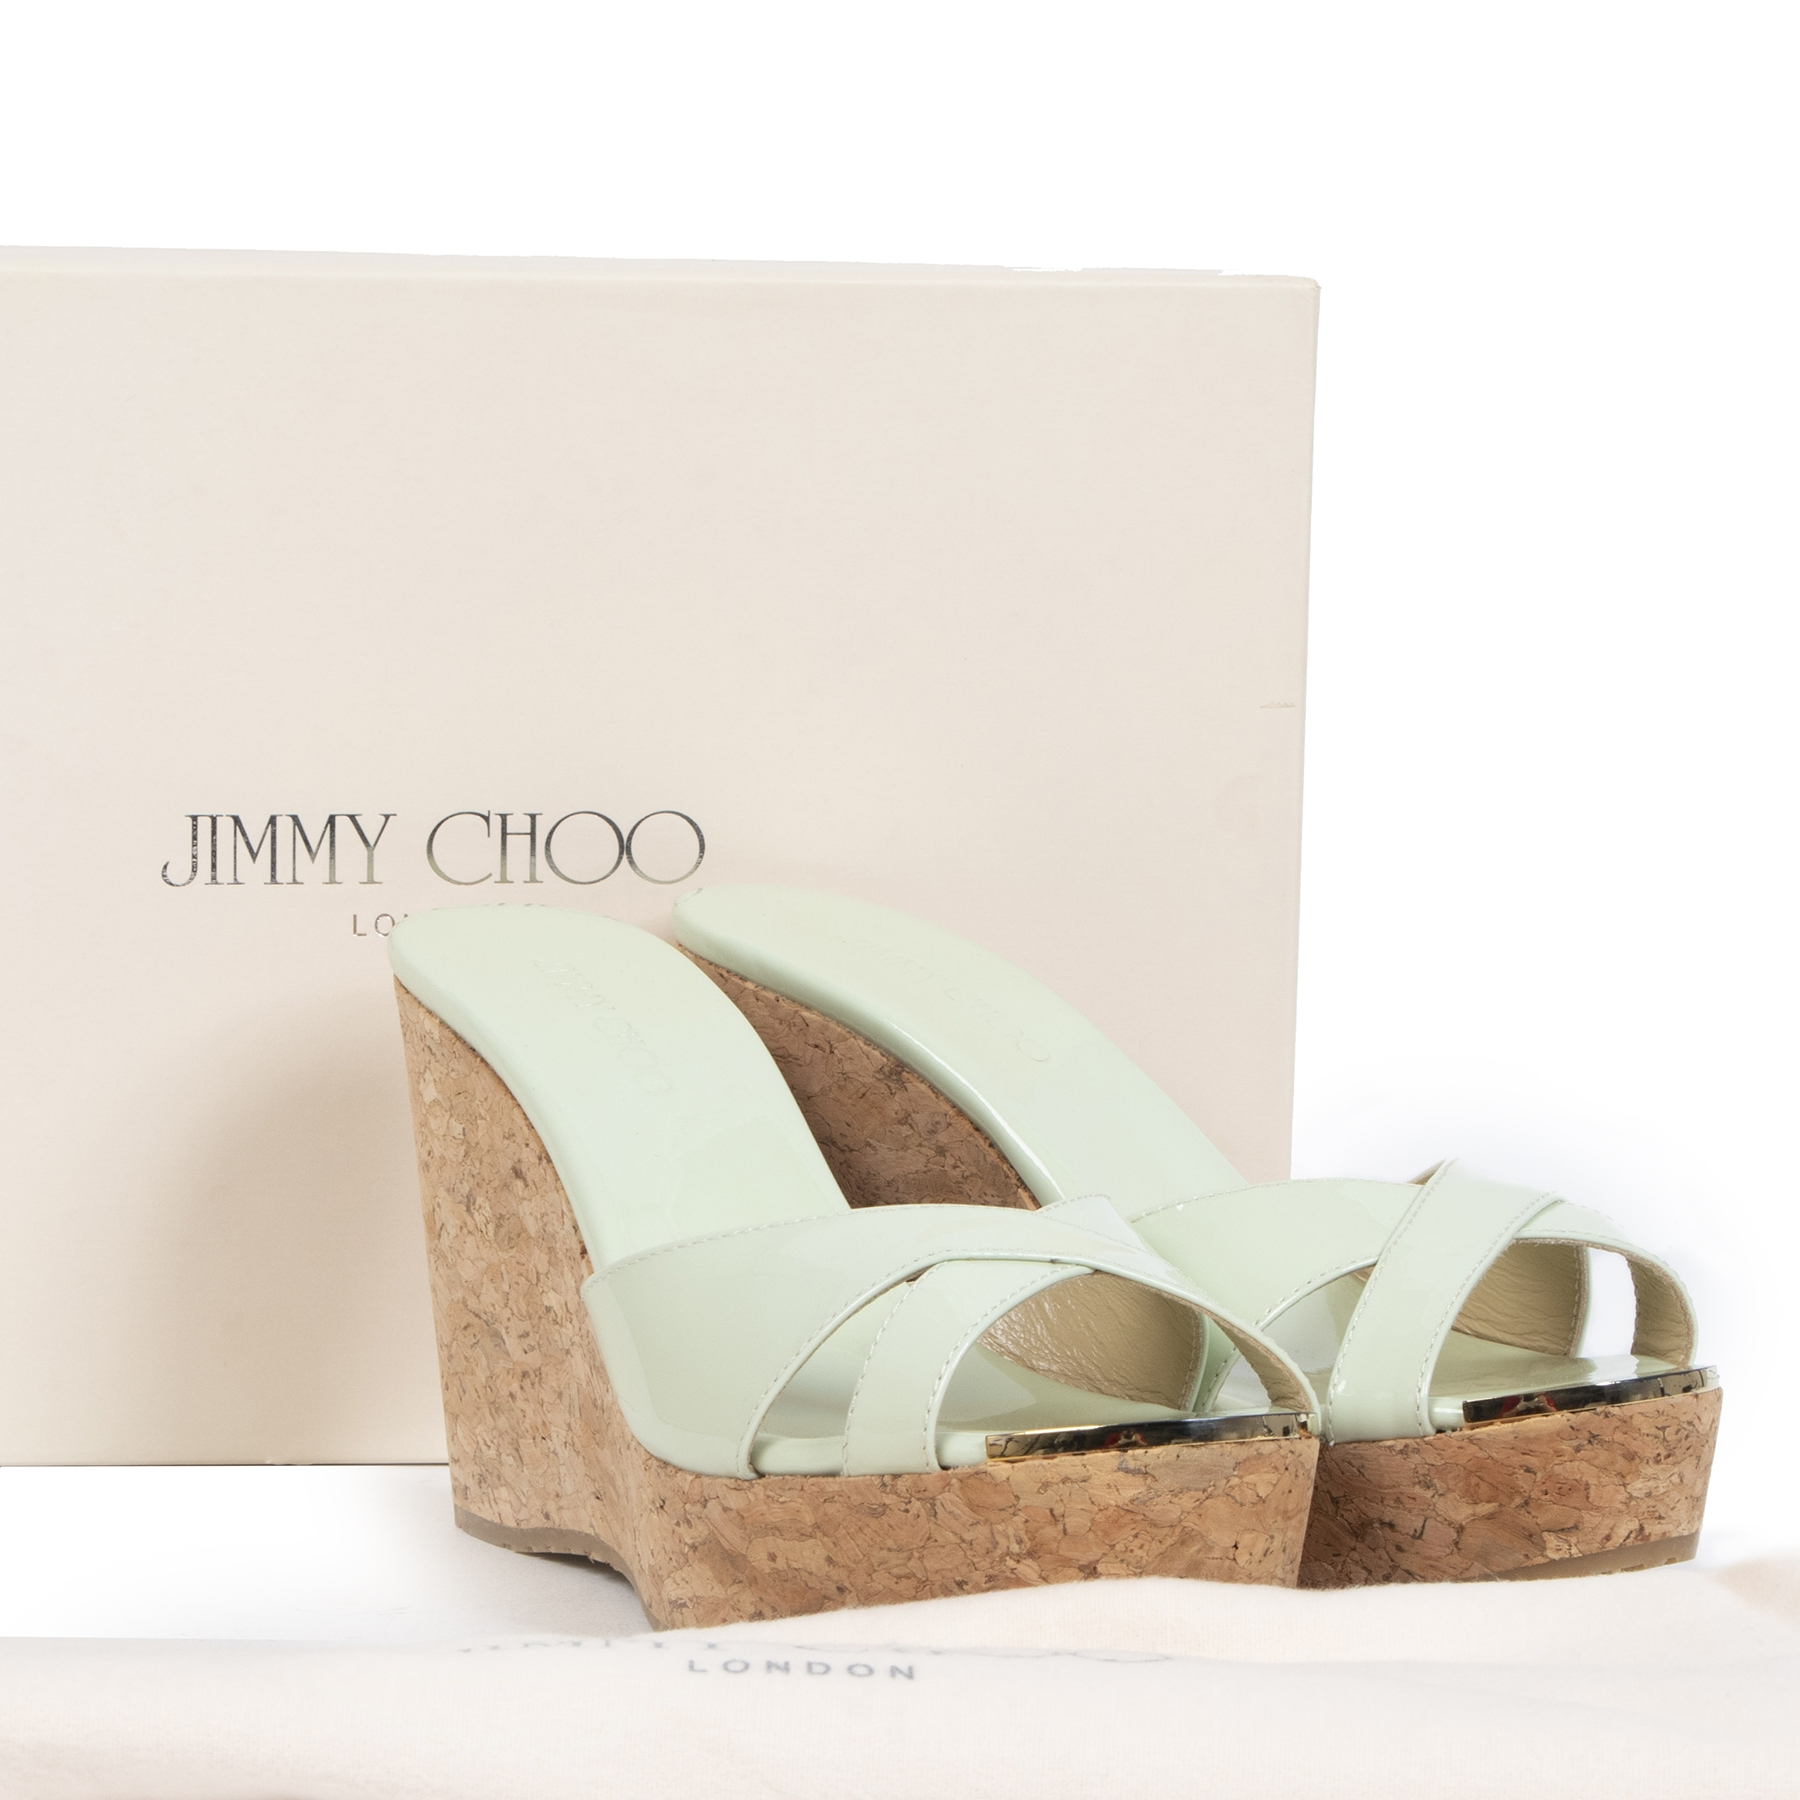 Are you buying and selling your authentic Jimmy Choo Keylime Green Patent Wedges - size 35